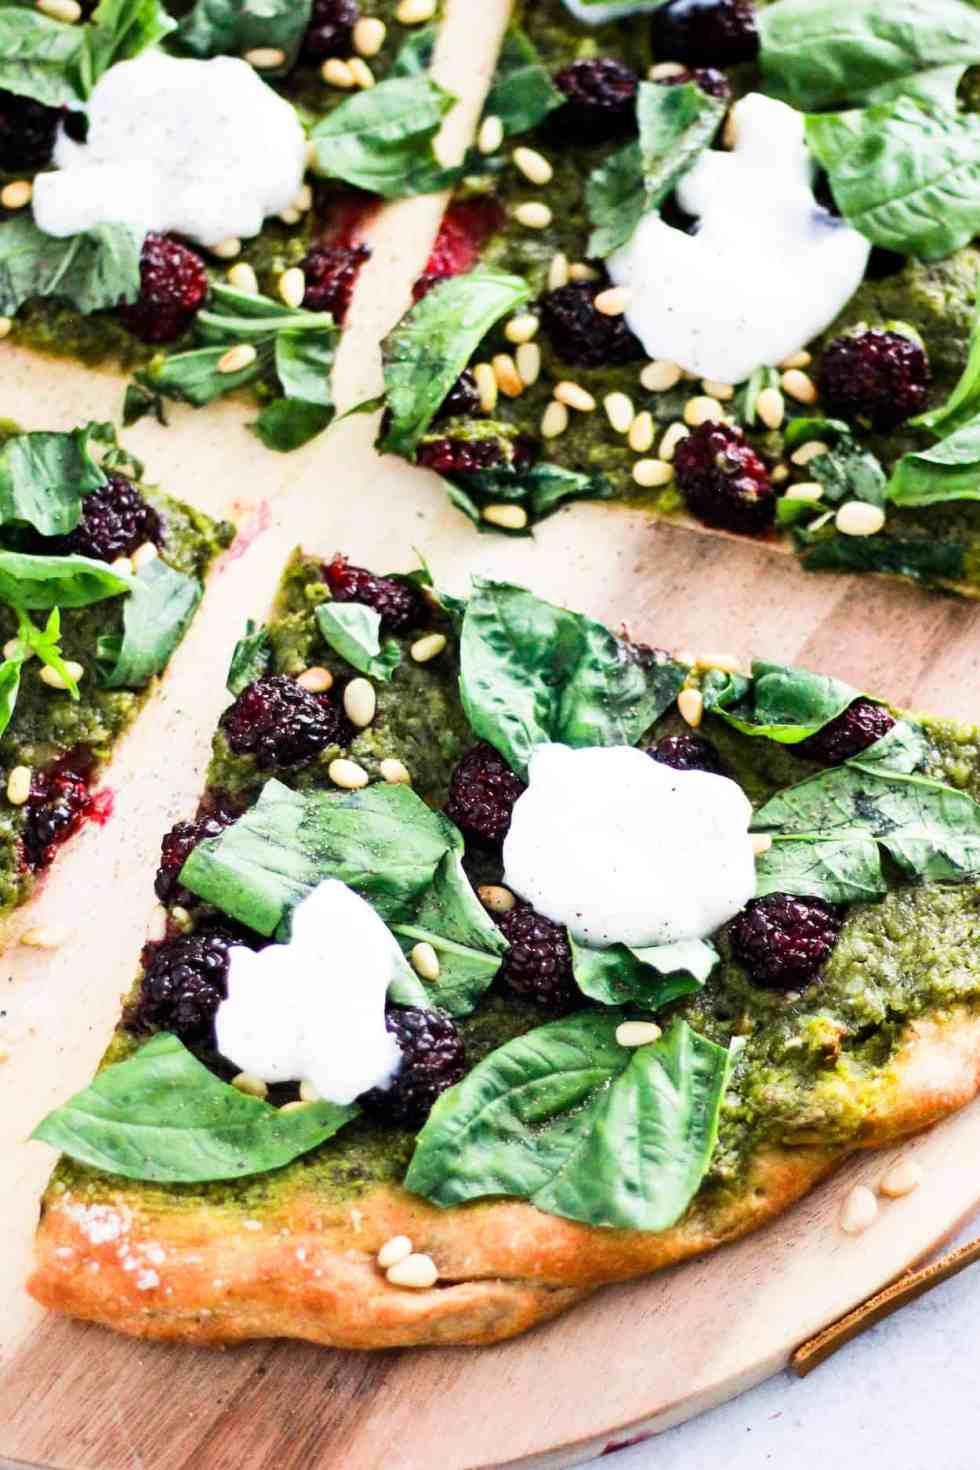 Sliced green Vegan Pesto Pizza with blackberries on wood board.